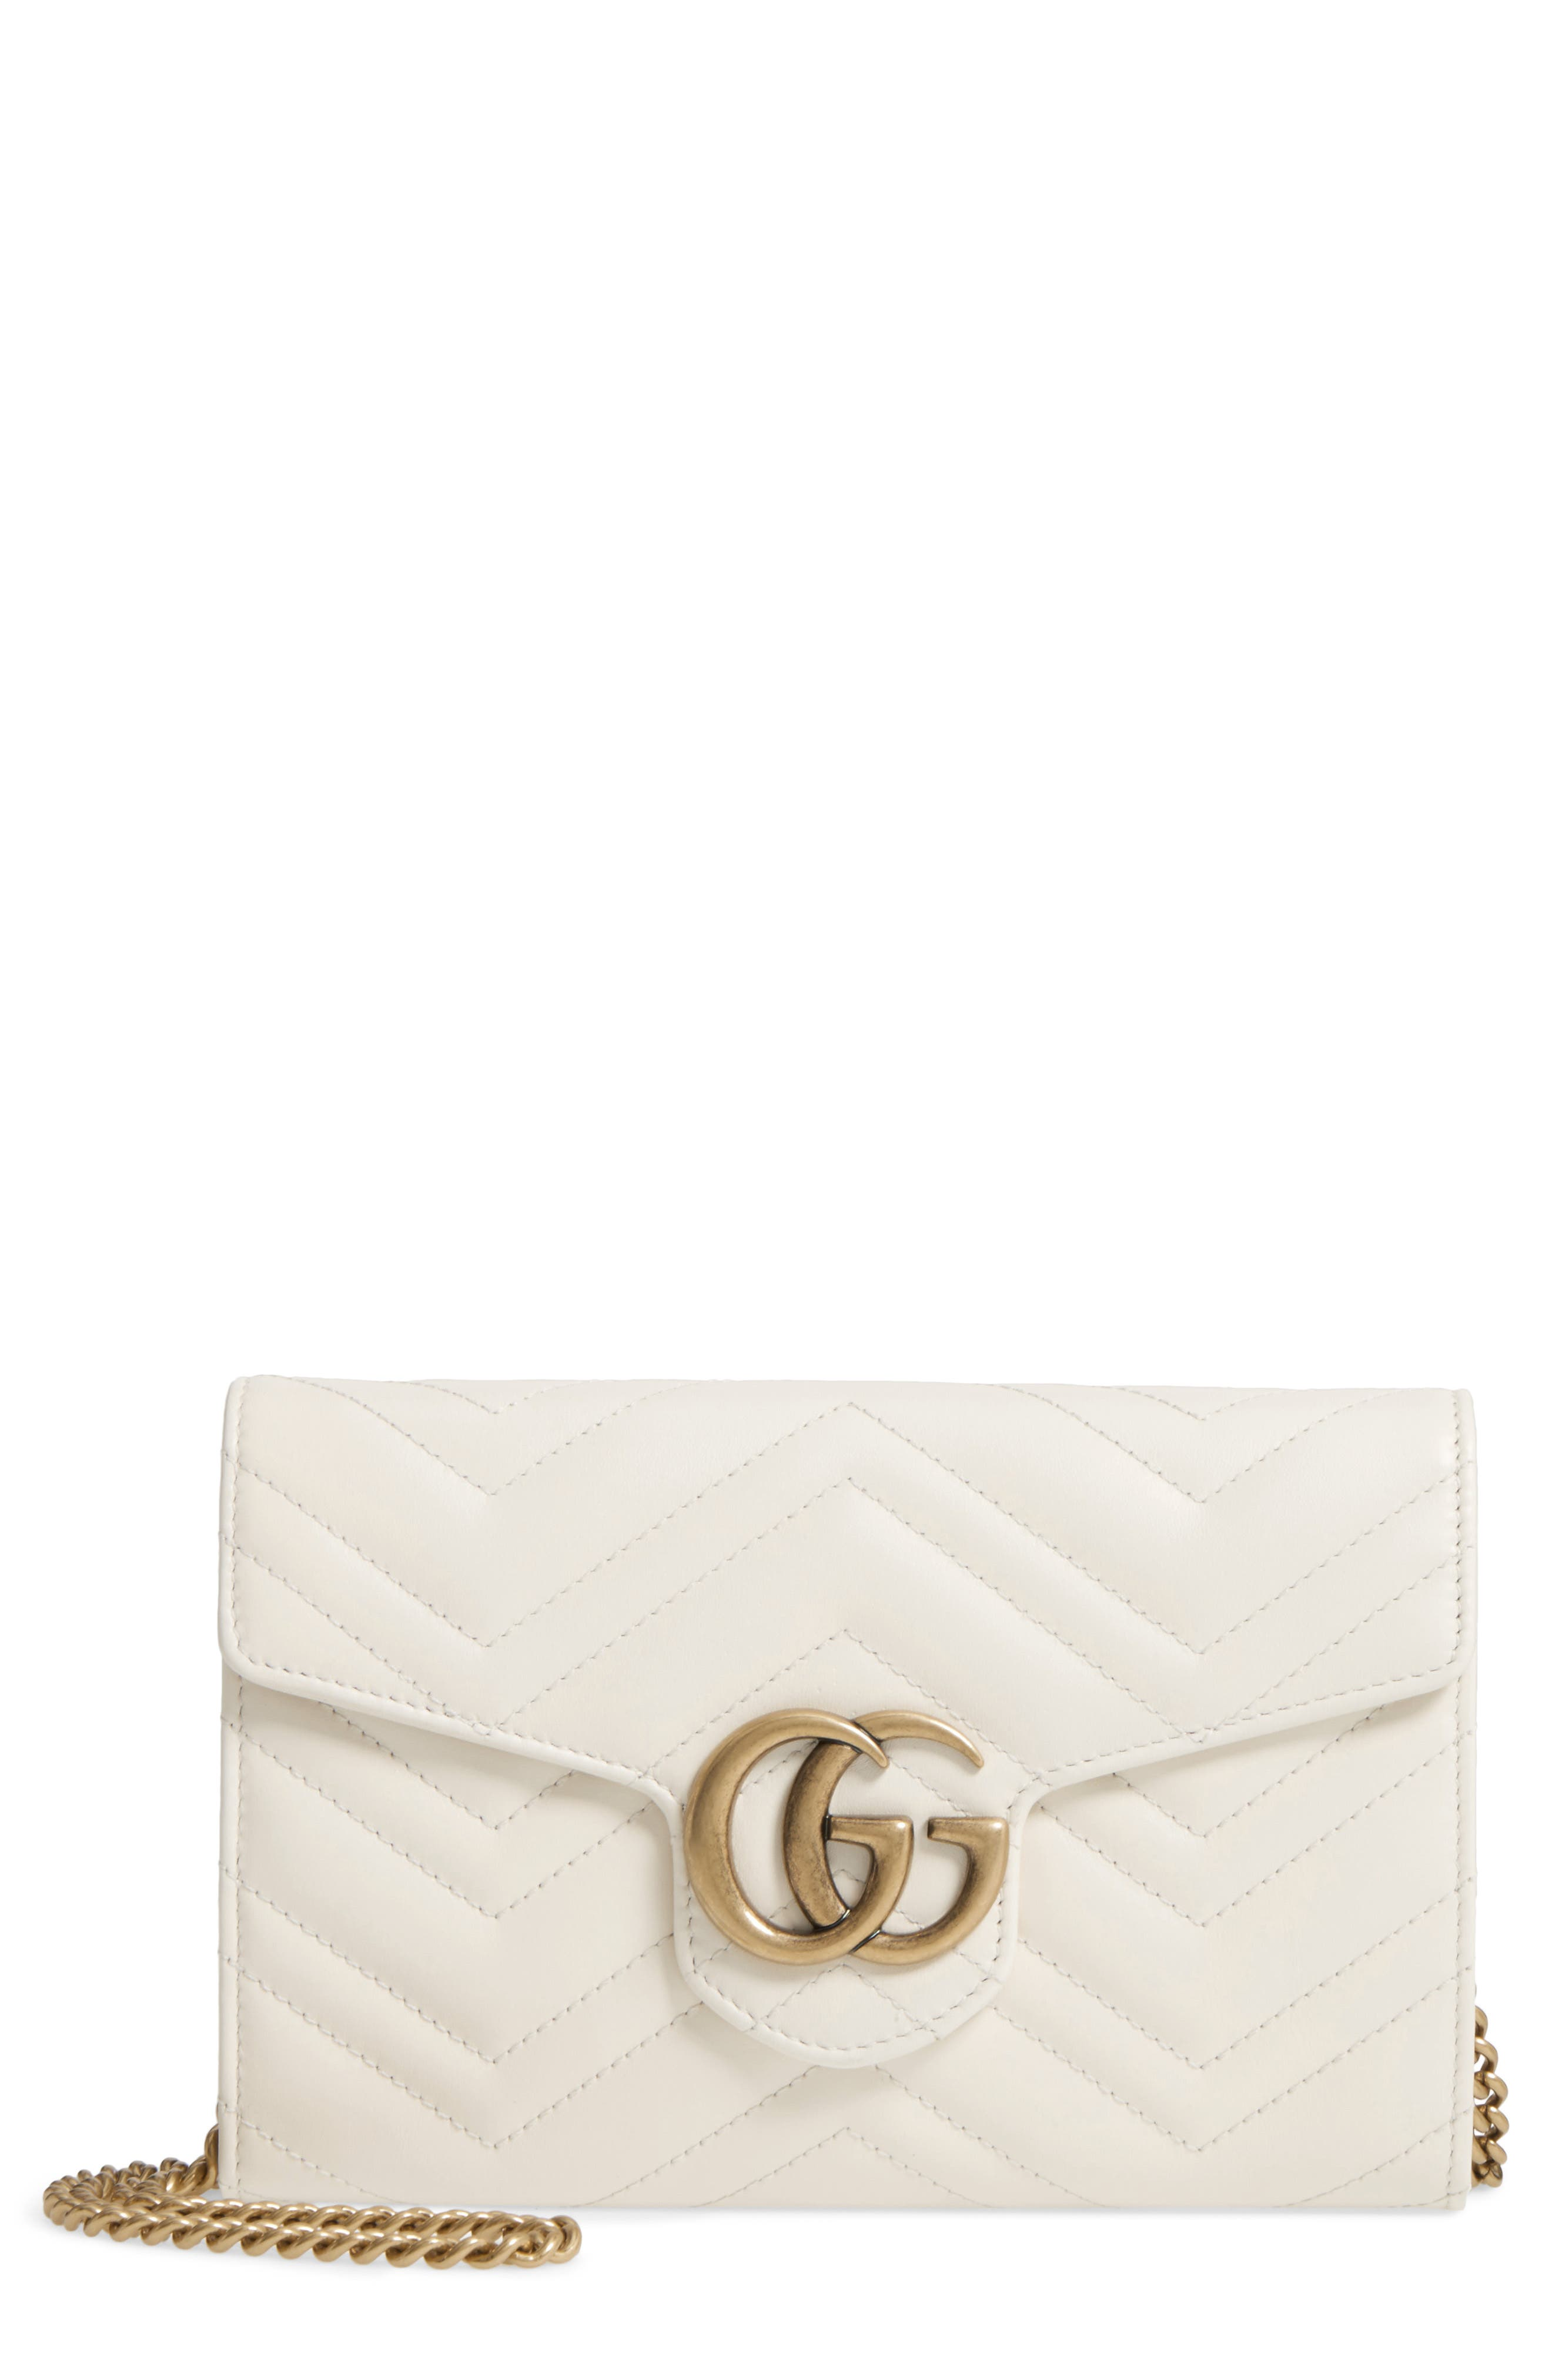 Gucci GG Marmont 2.0 Matelassé Leather Wallet on a Chain